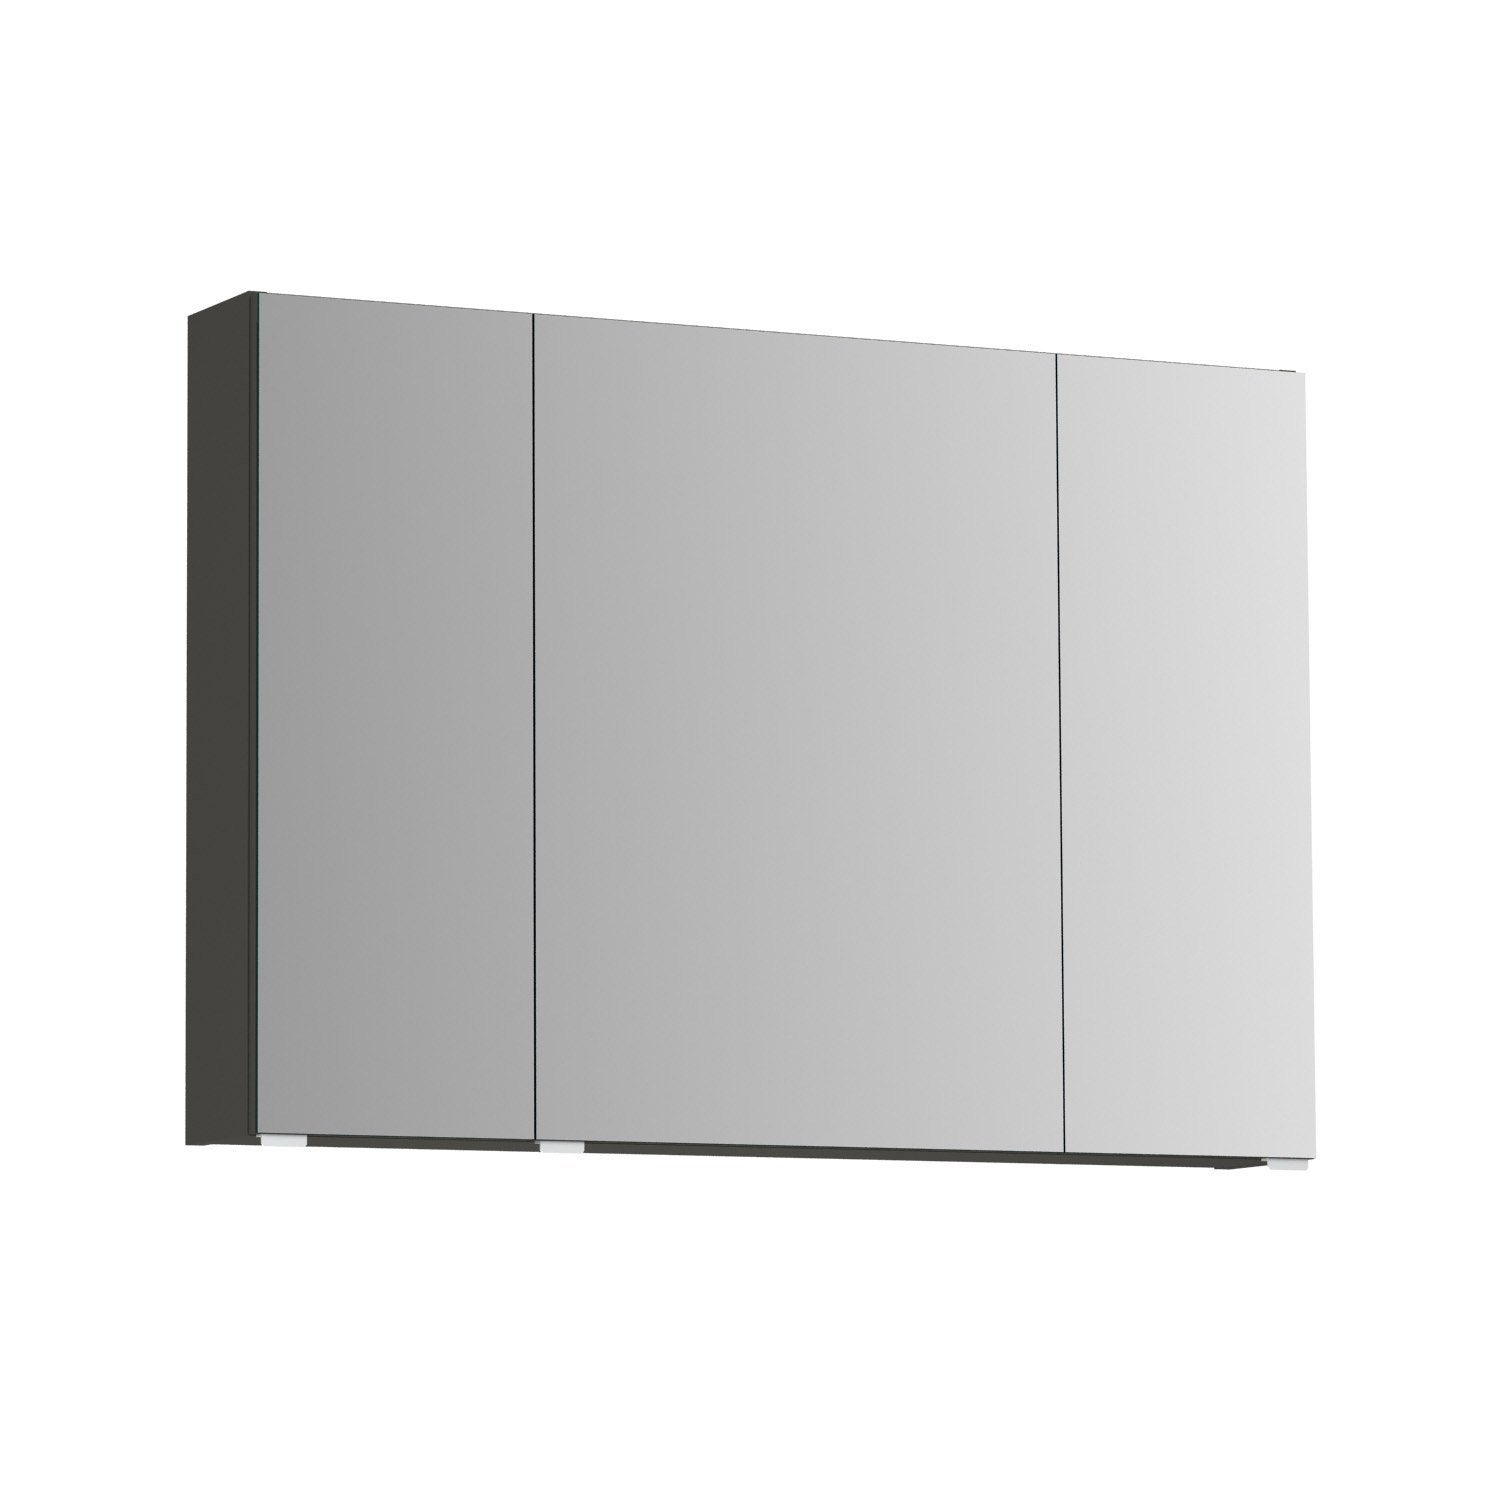 armoire de toilette l 100 cm gris opale leroy merlin. Black Bedroom Furniture Sets. Home Design Ideas